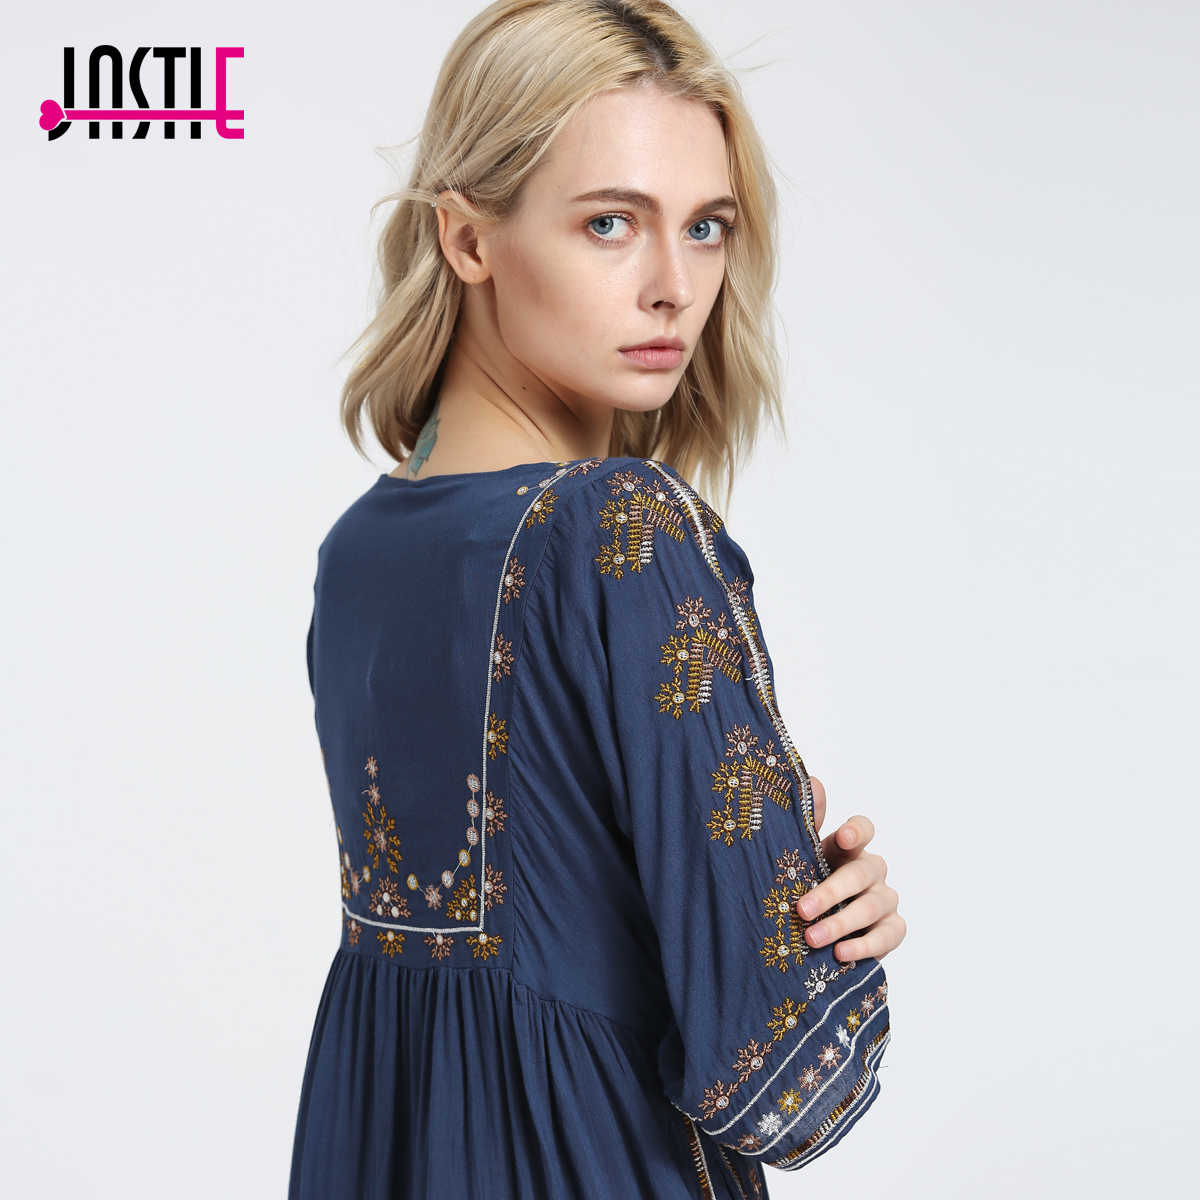 50acfb079cf79 Jastie Starlight Mini Dress Boho Chic Floral Embroidered Women Dresses  Cutout Neckline with Tie Sexy Dress Summer Vestidos 5808